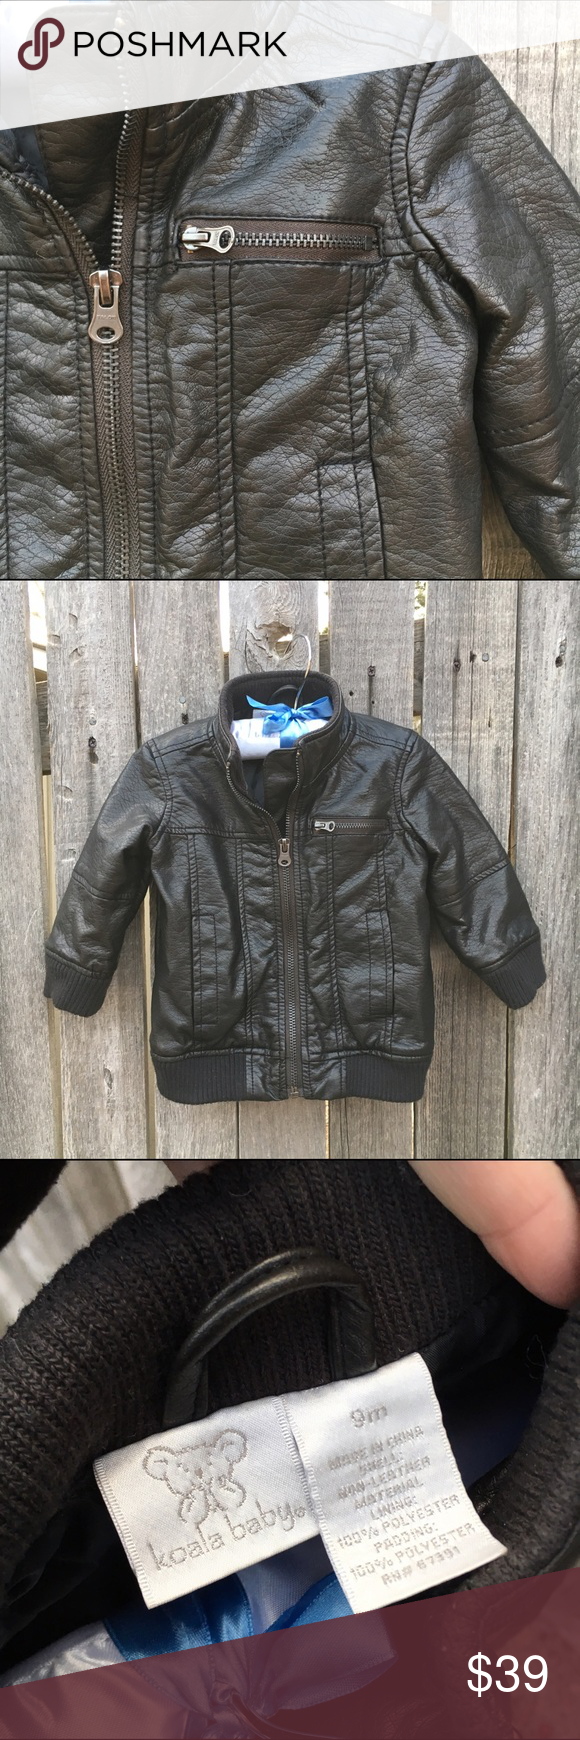 aa9290896175 Koala Kids Brown Bomber Jacket 12 MOS Like new condition! Only worn ...